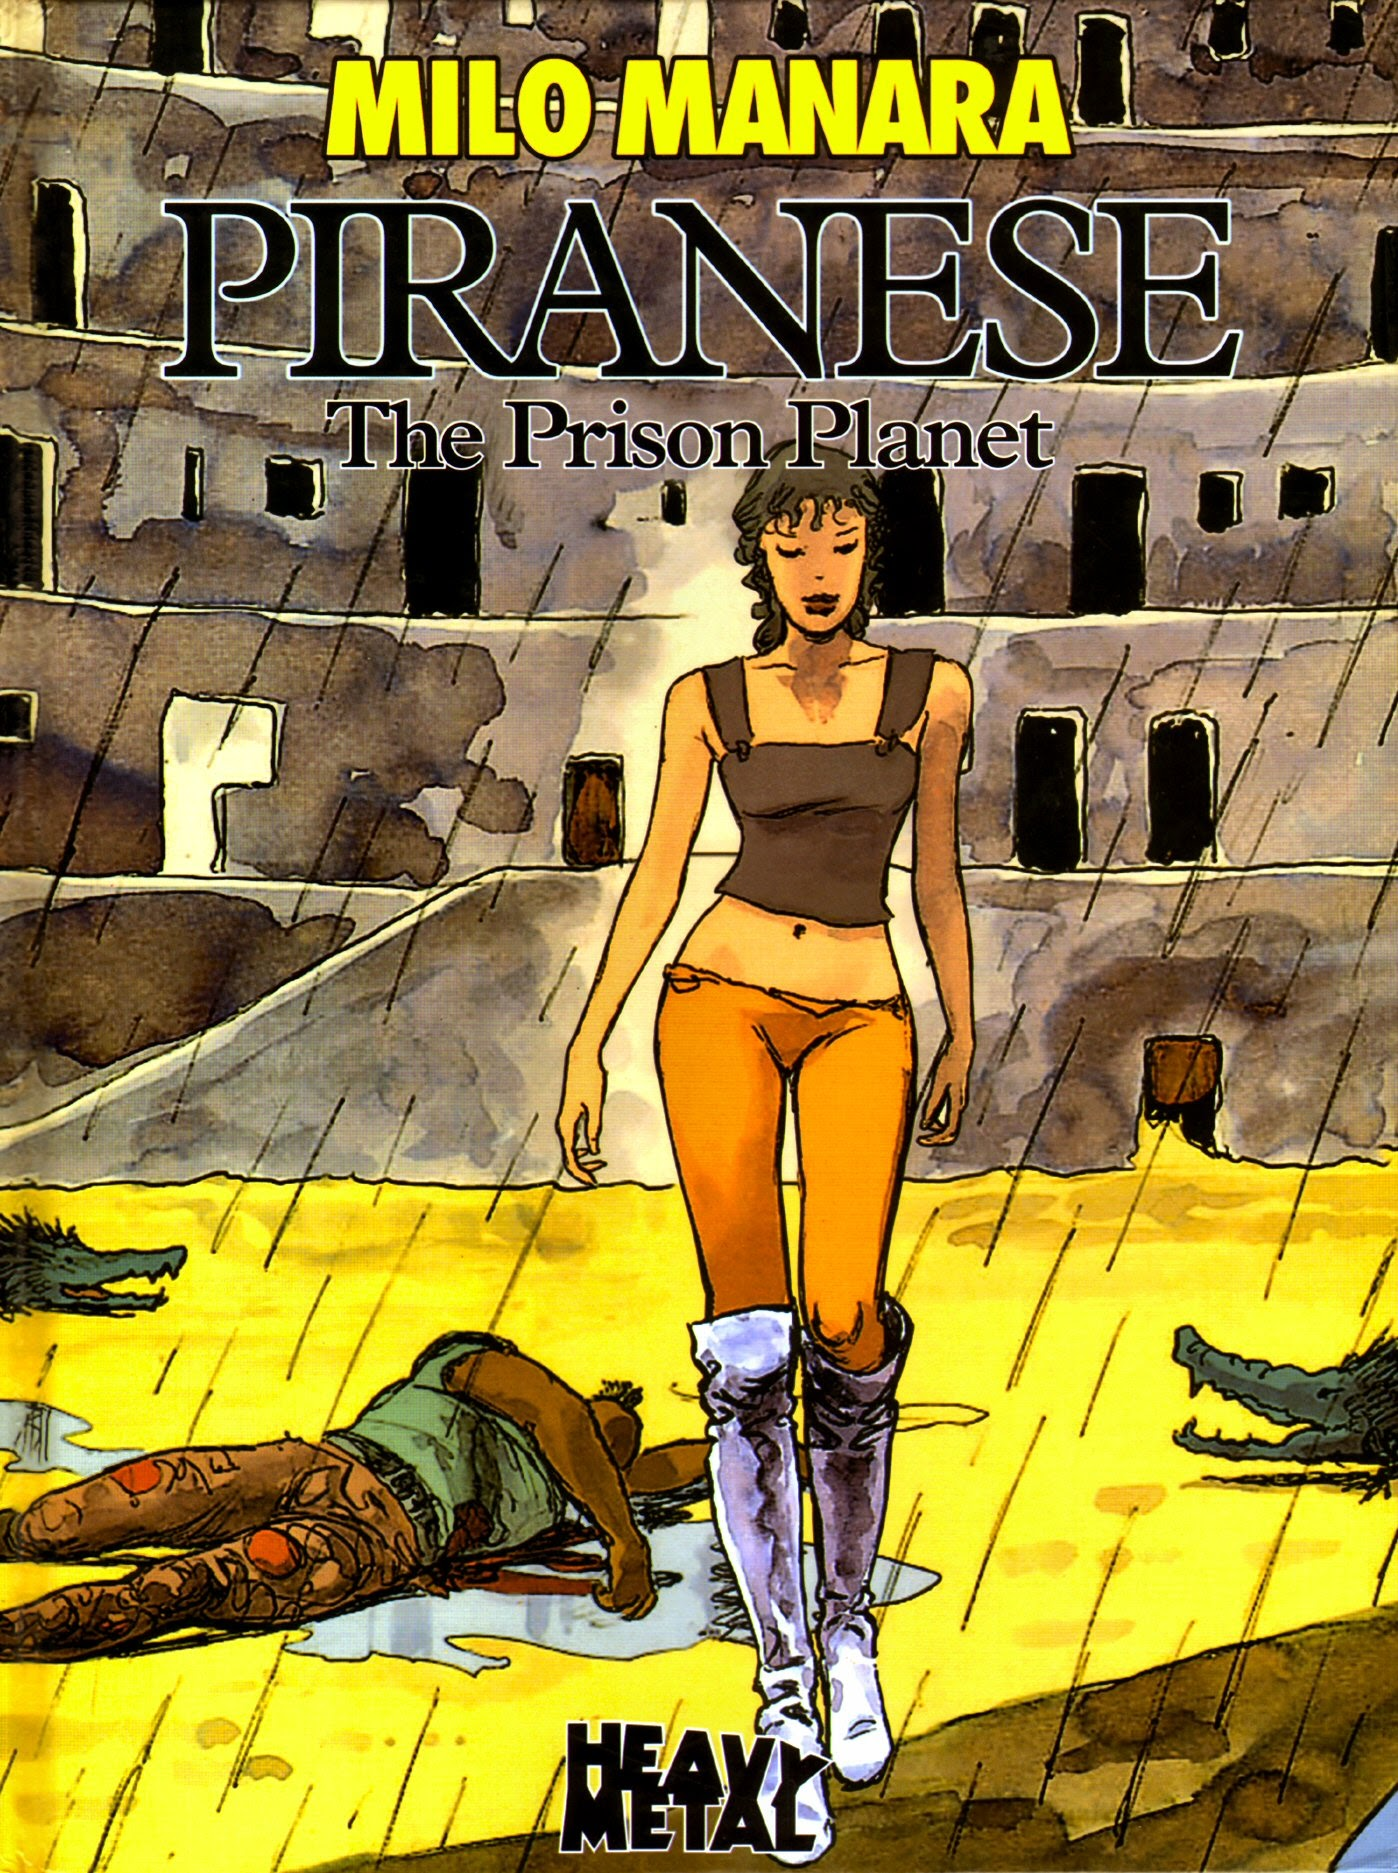 Piranese The Prison Planet Full Page 1